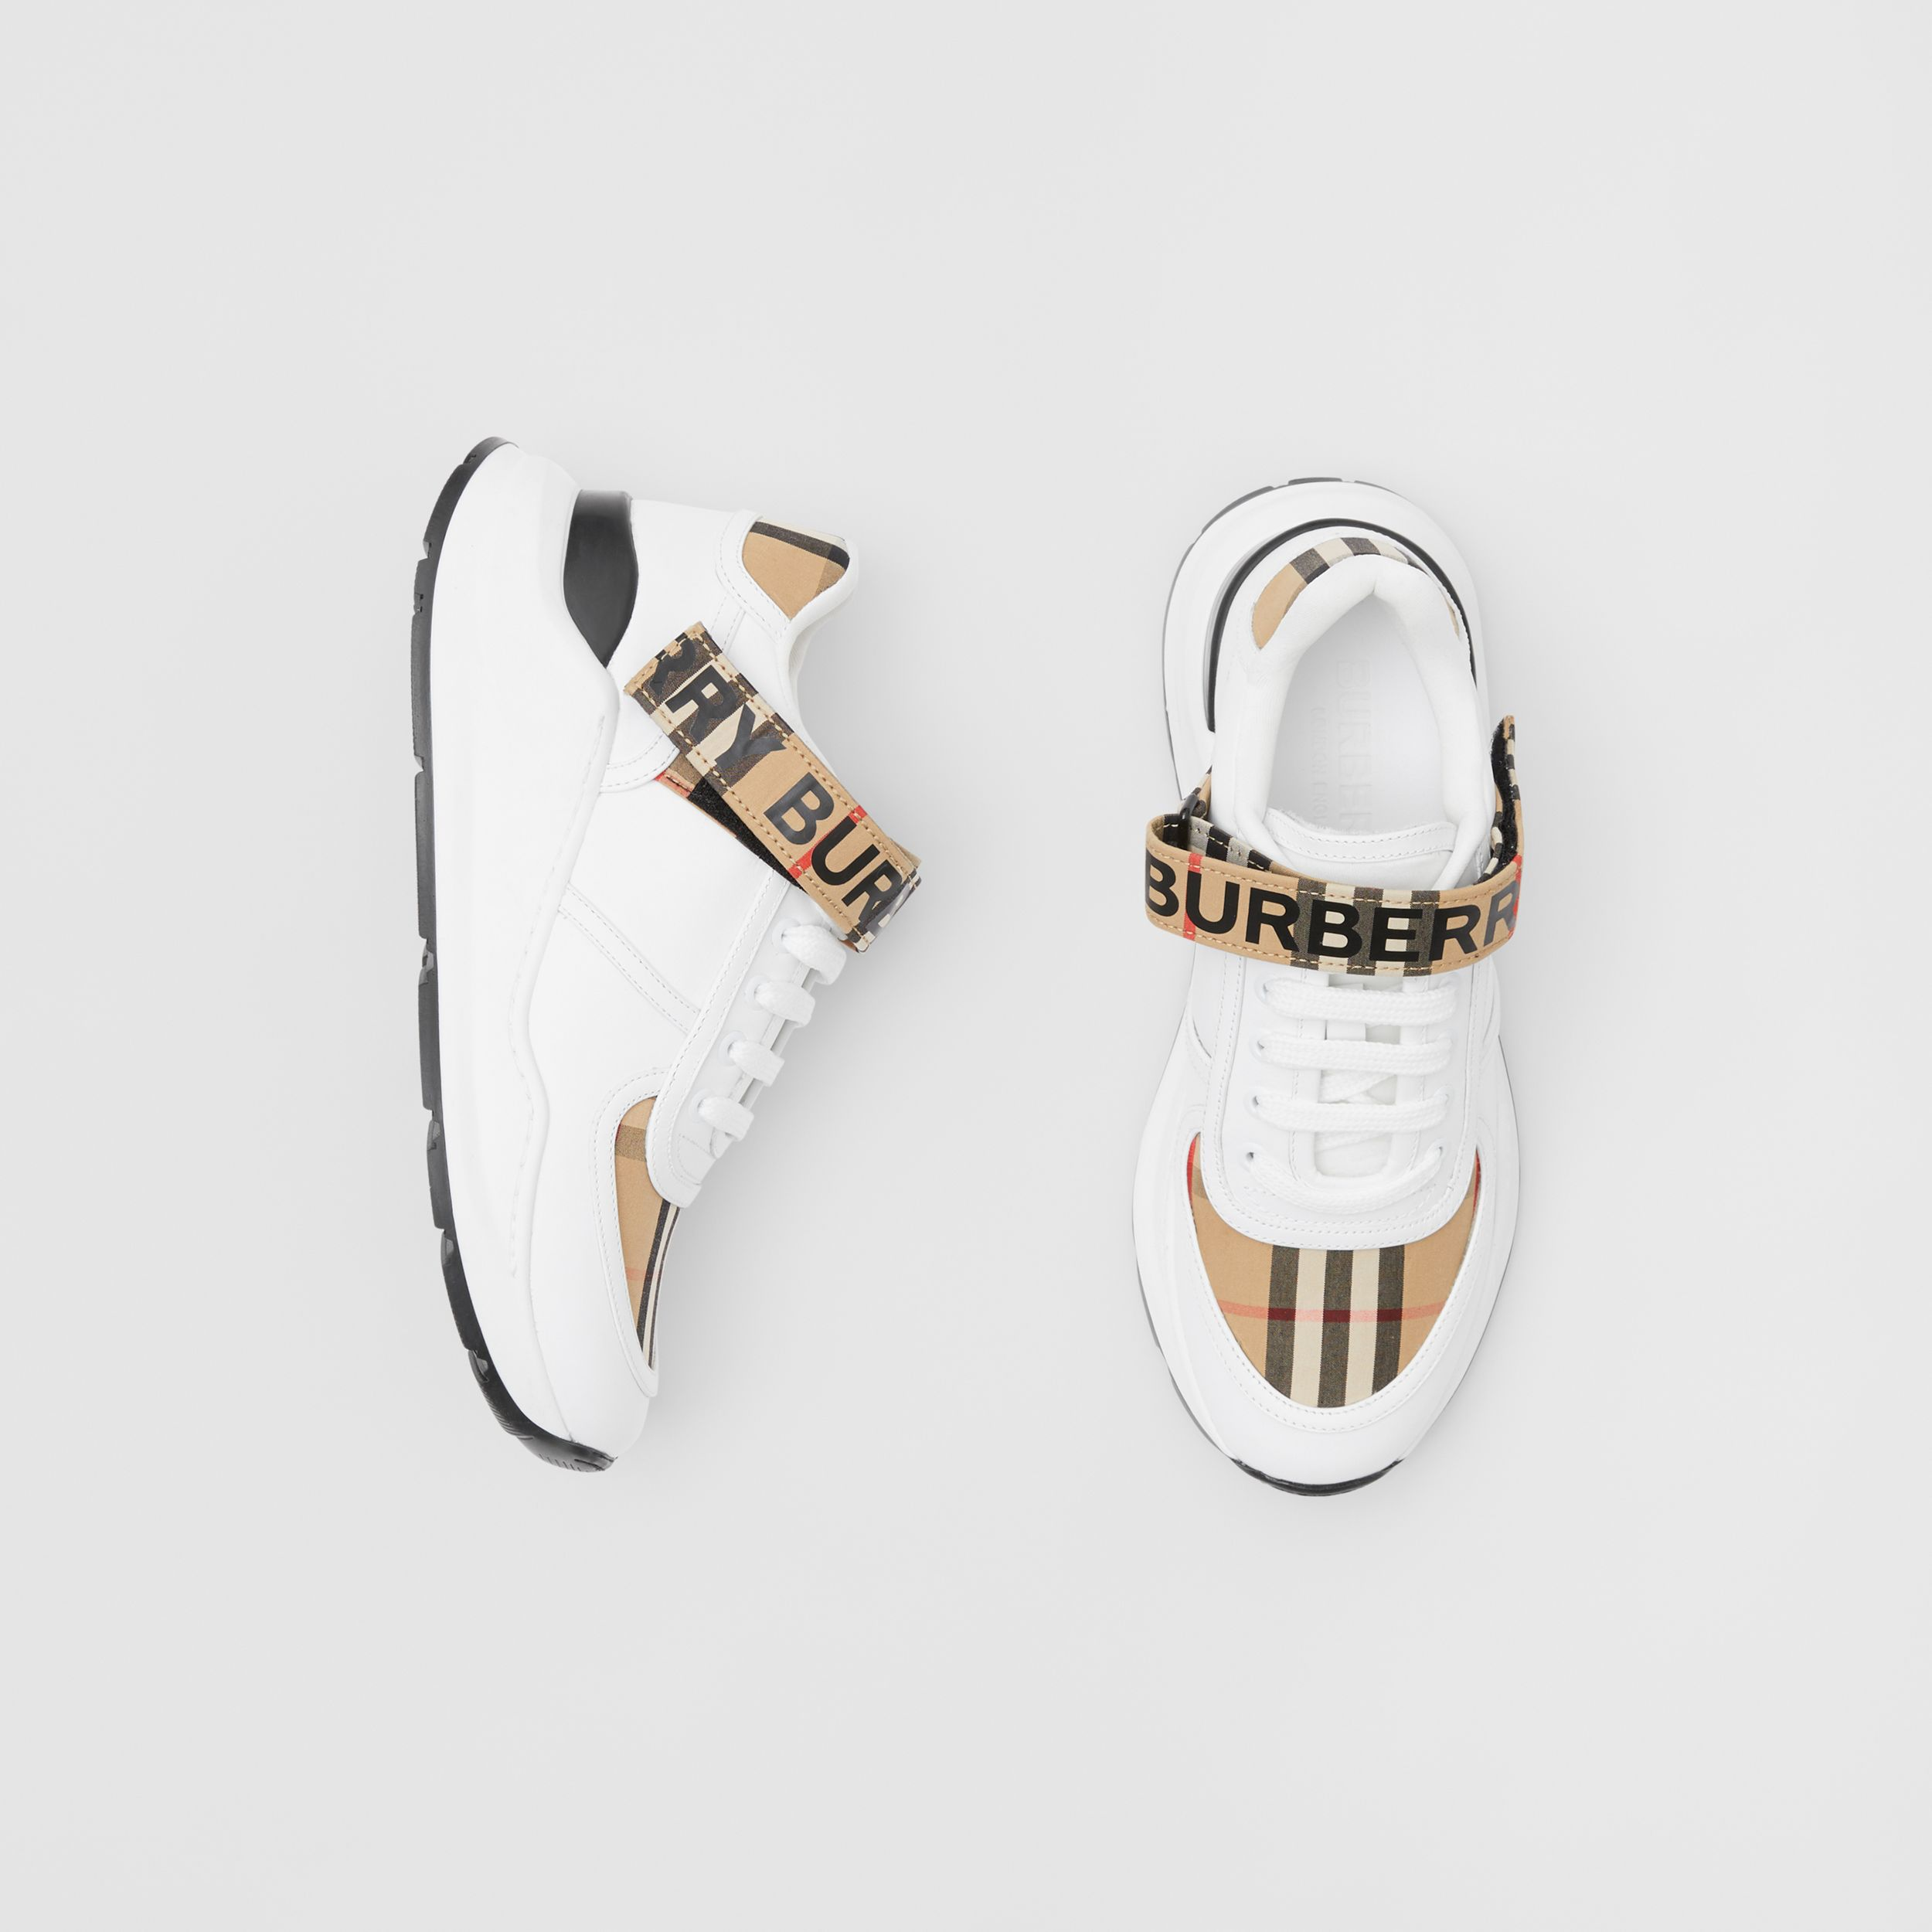 Logo Print Vintage Check and Leather Sneakers in Archive Beige - Women | Burberry - 1